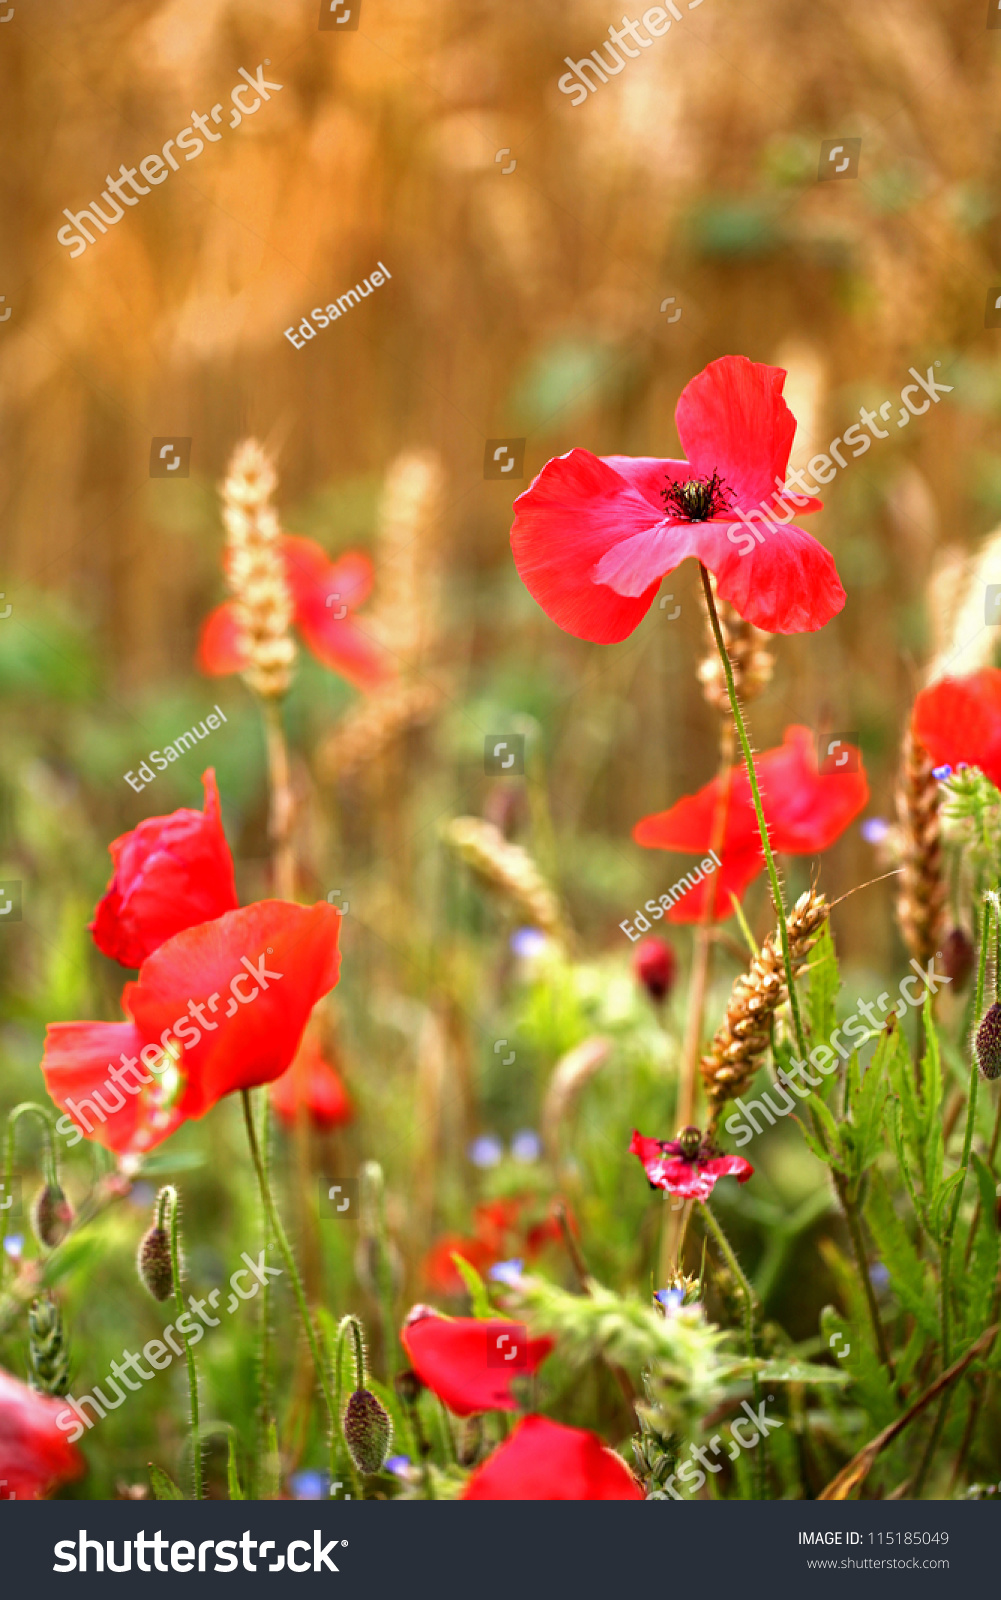 Red poppies poppy flower cornfield symbol stock photo 115185049 red poppies poppy flower in cornfield symbol of war for remembrance day buycottarizona